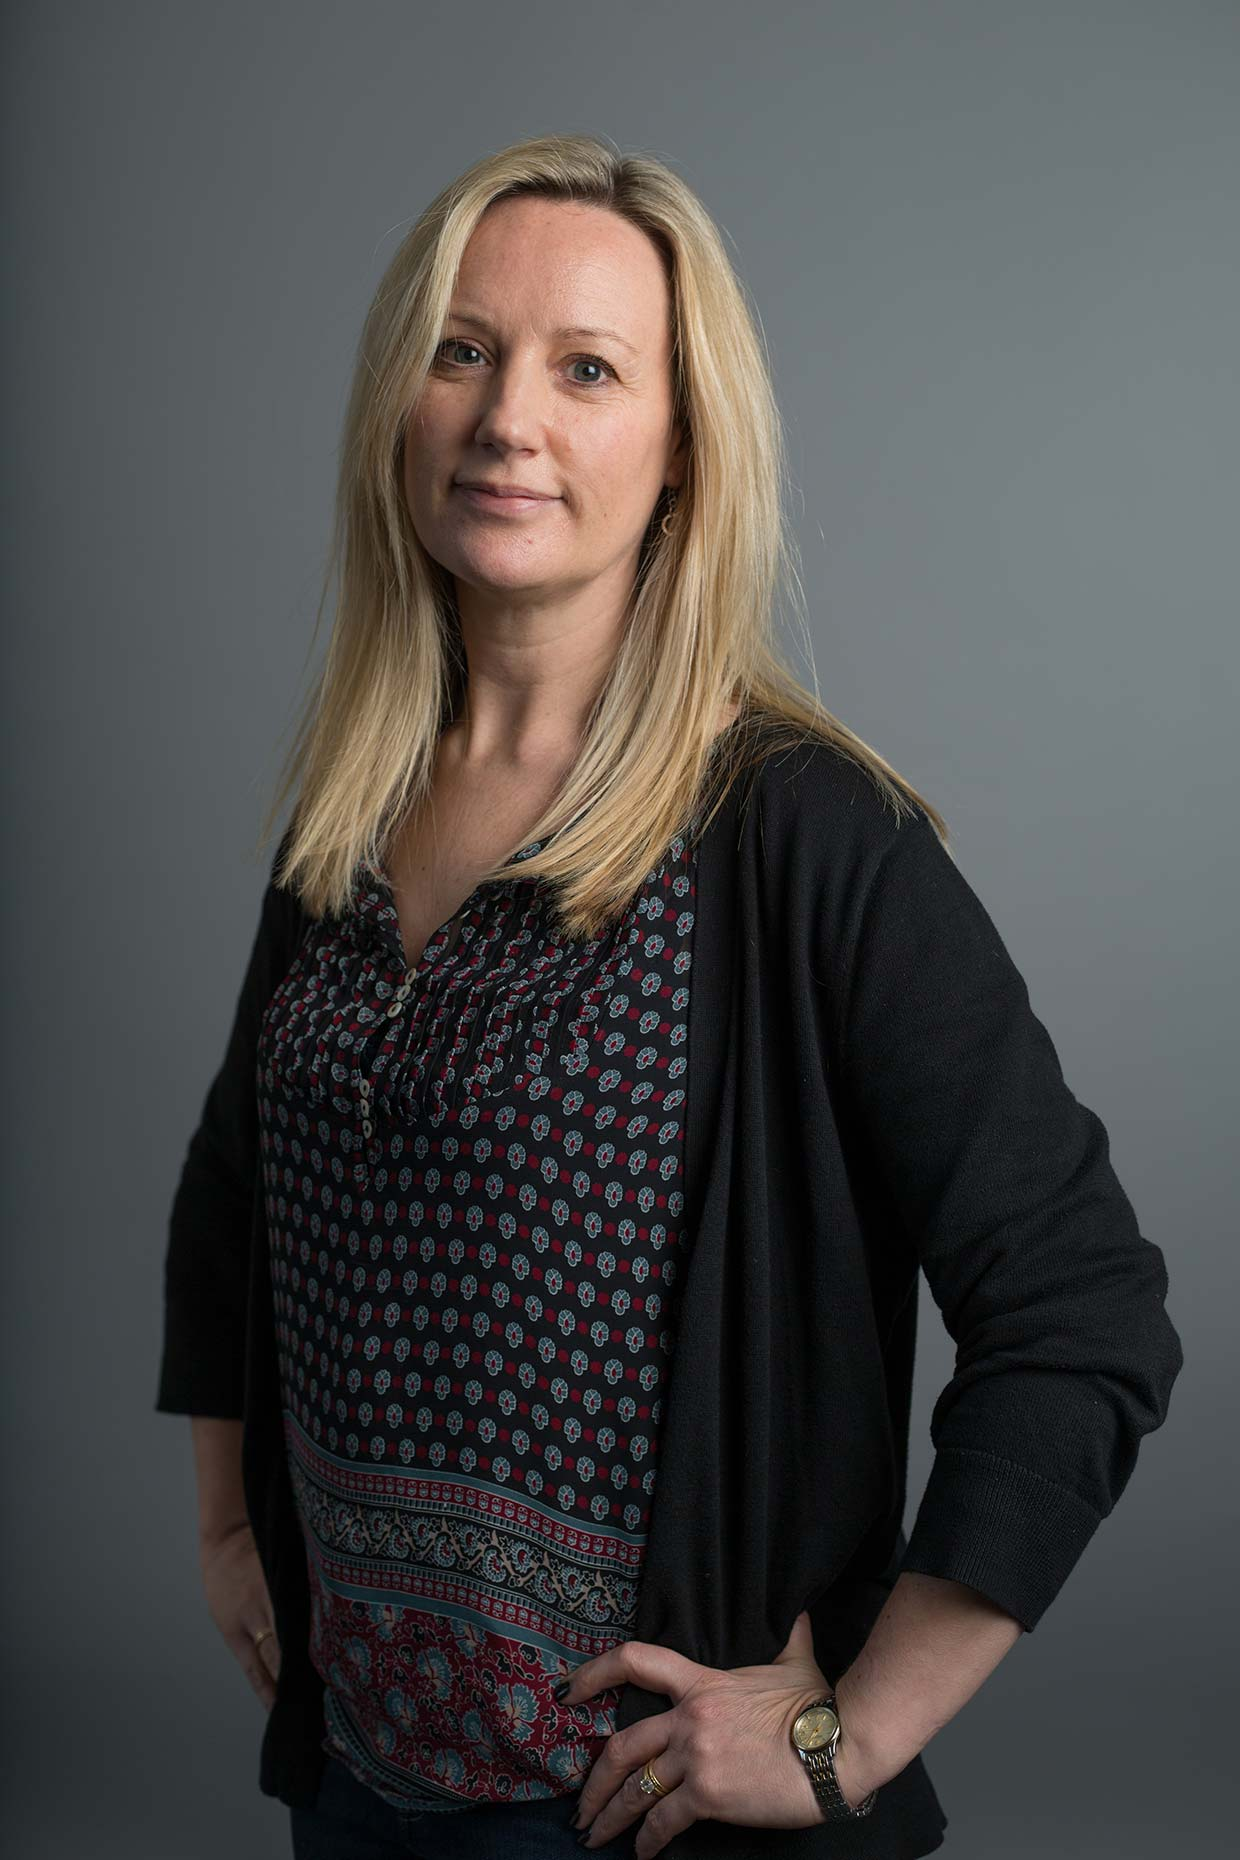 Portrait of youthful business woman by Scotland corporate photographer J. Sutton-Hibbert